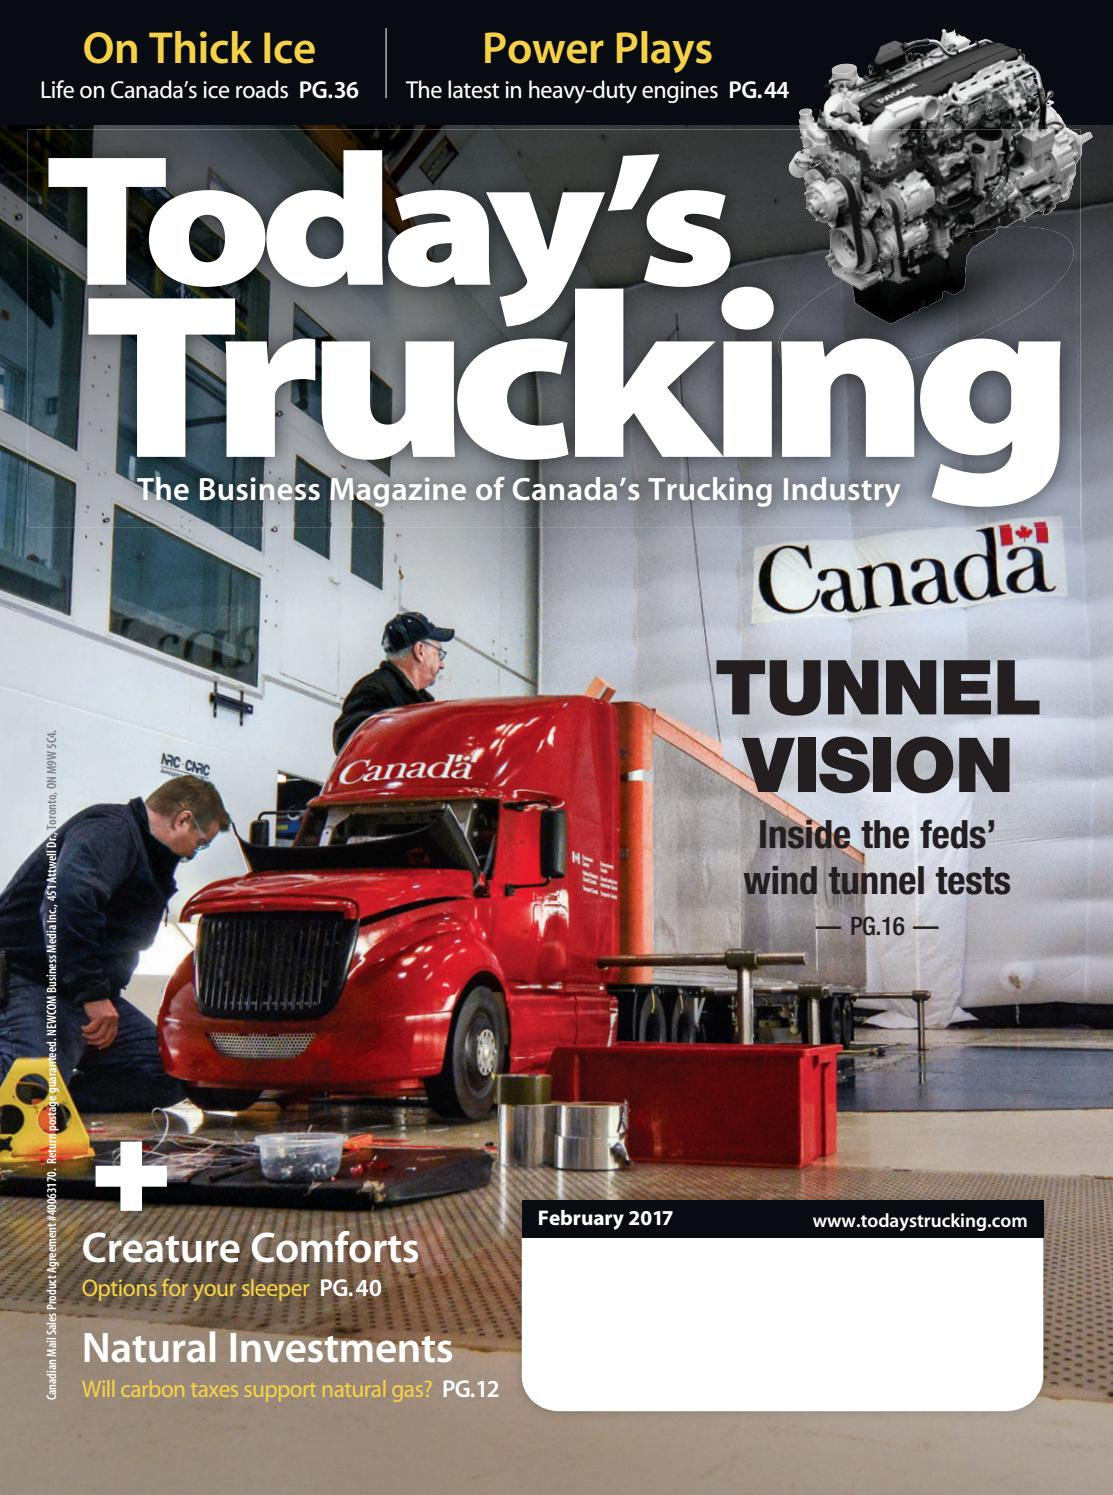 Todays Trucking February 2017 by Annex Business Media - issuu